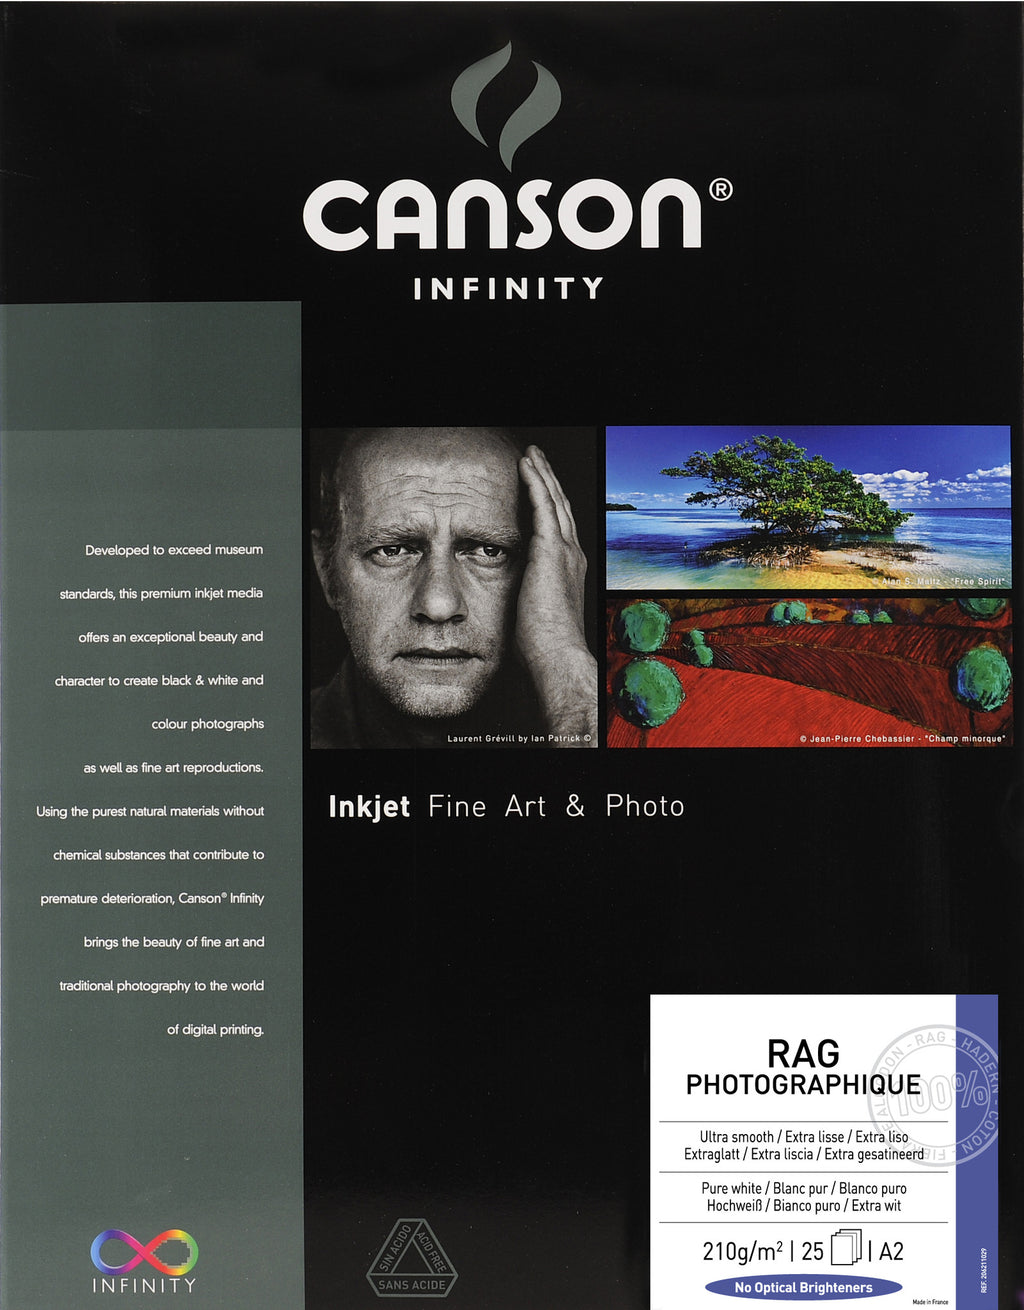 Canson Infinity Rag Photographique - 210gsm - A2 (25 sheets) - Wall Your Photos